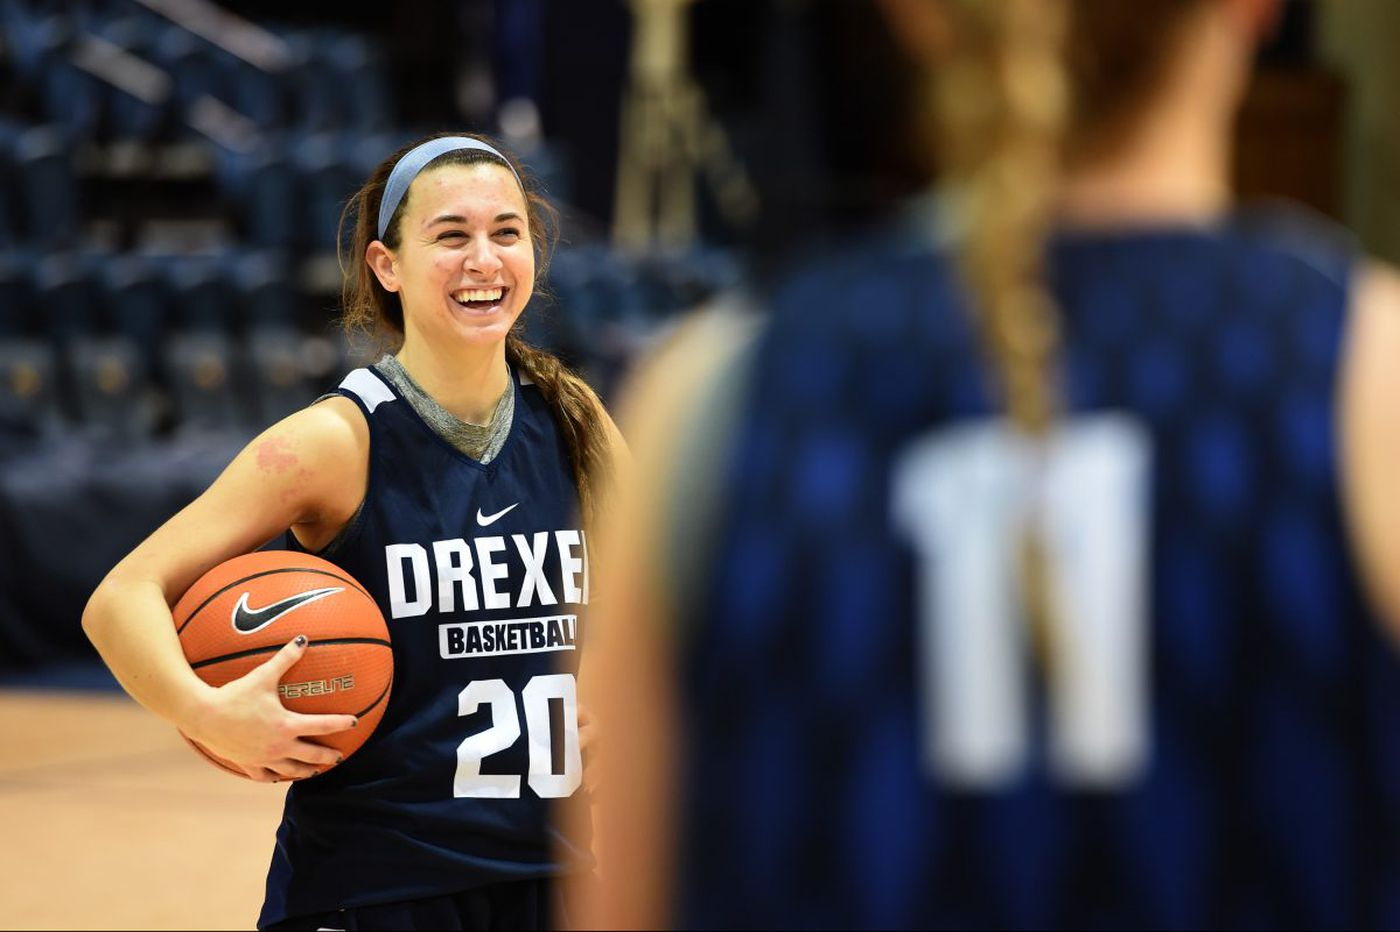 Women's City Six roundup: Drexel blows out UNC Wilmington to advance to CAA semifinals